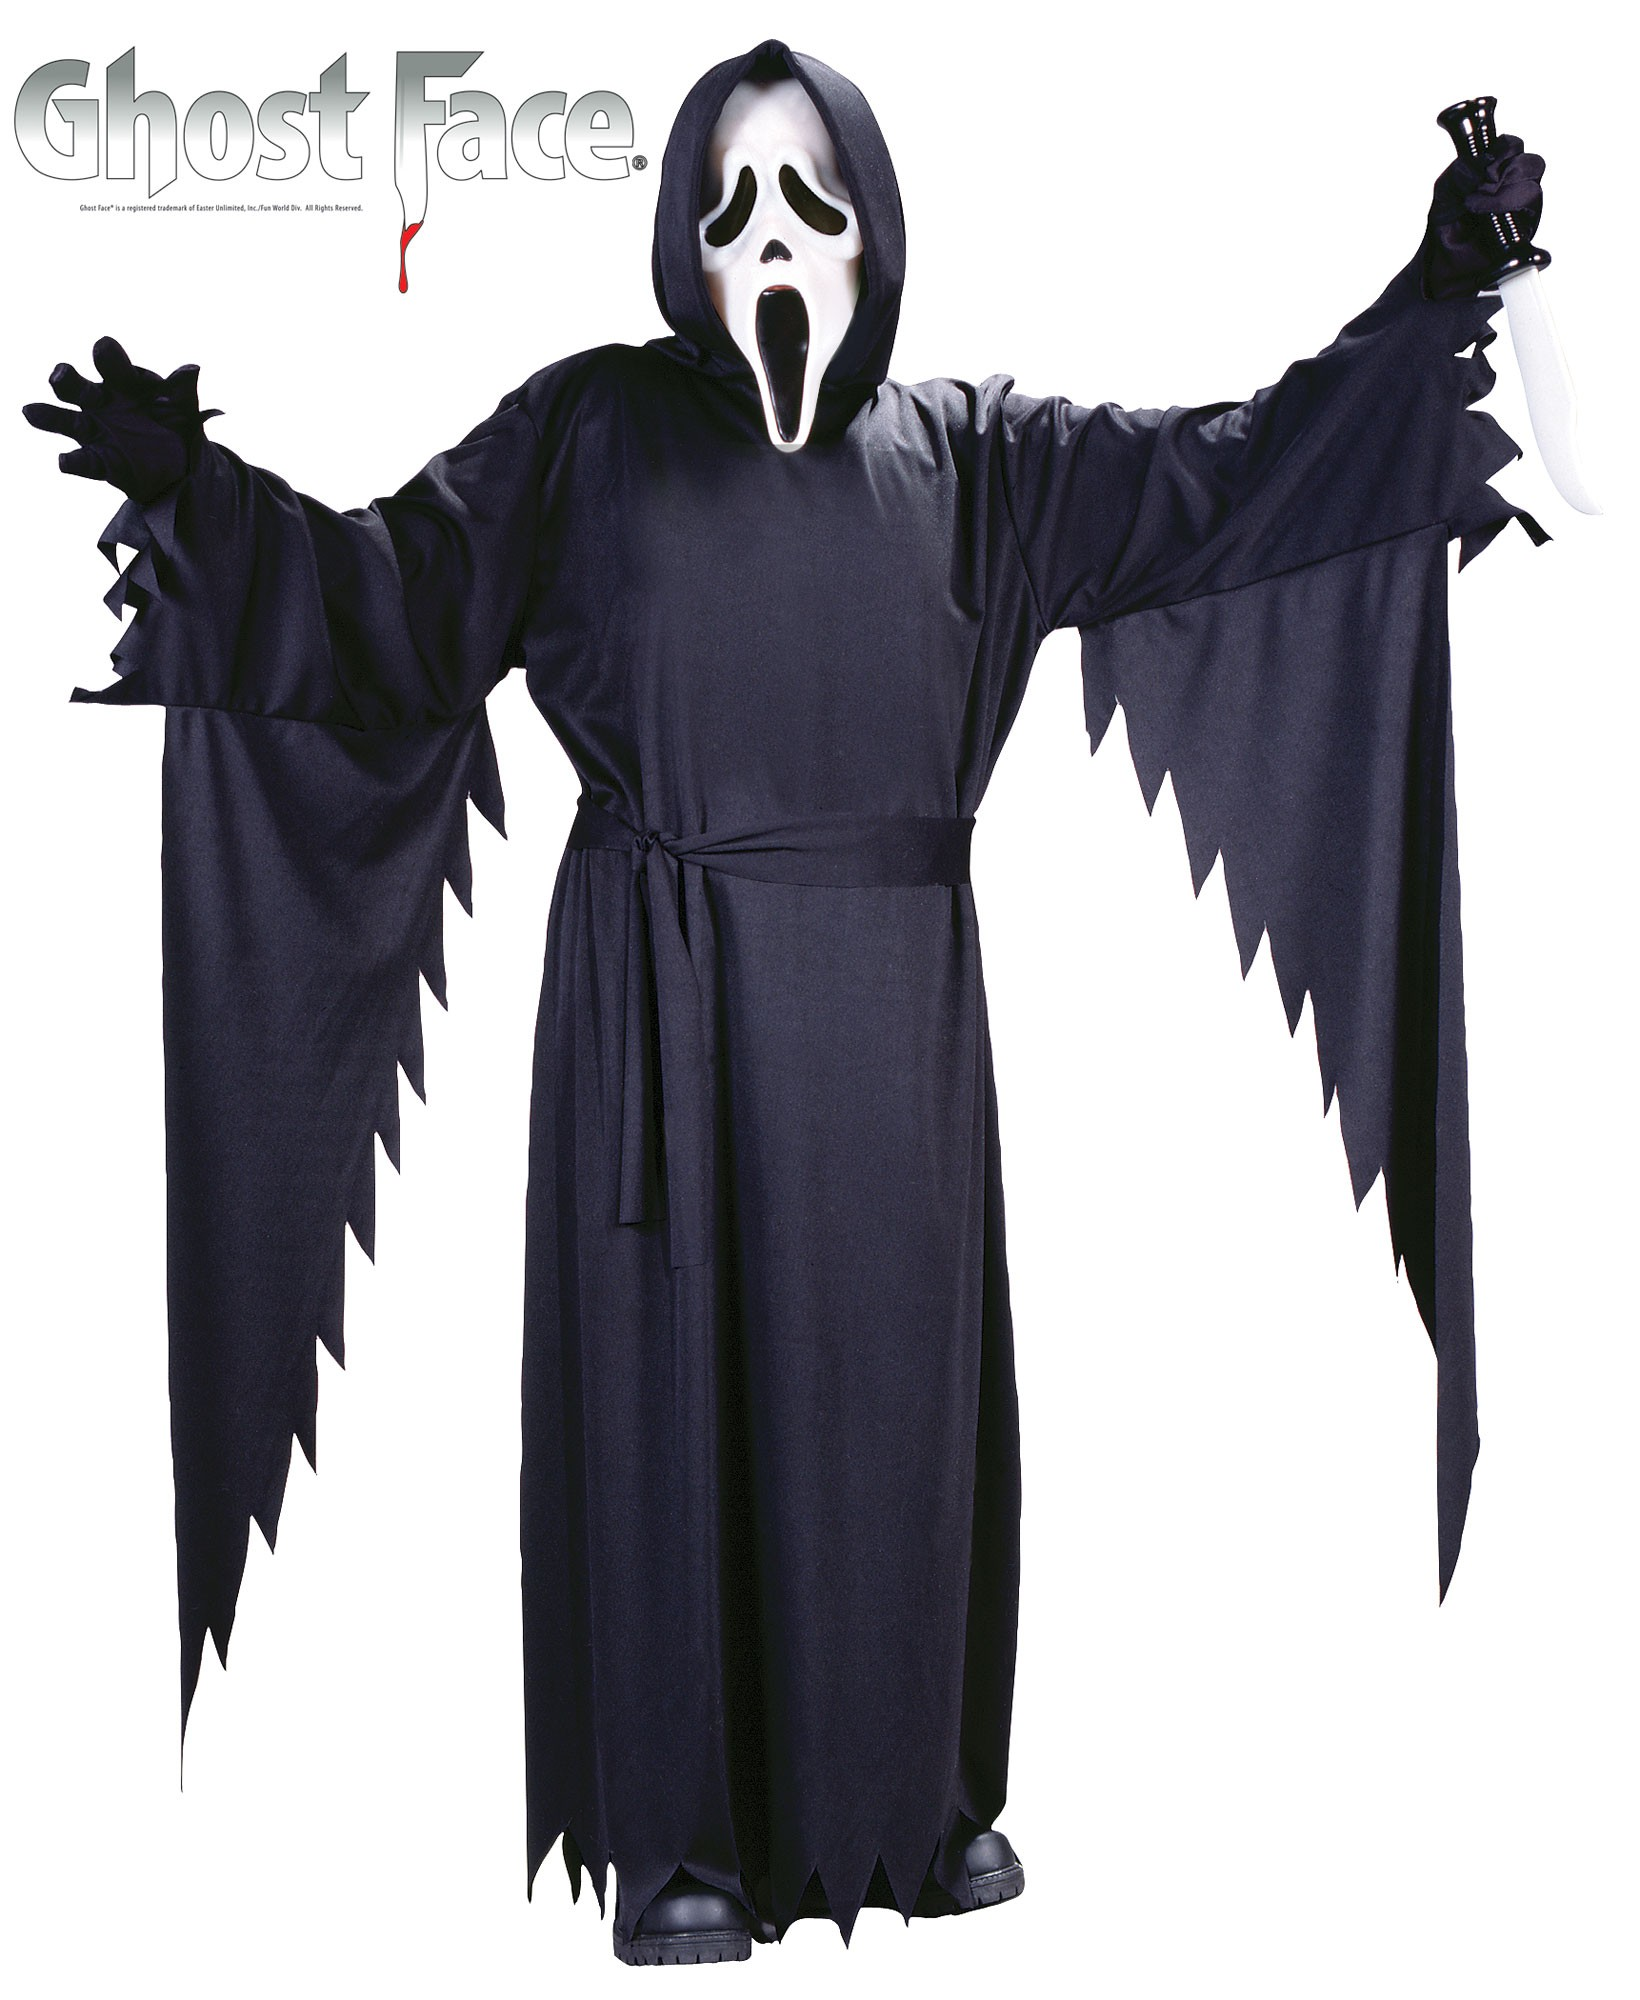 Costume for Halloween Black Skeleton Scary  Grim Reaper Ghost Scream Clothes